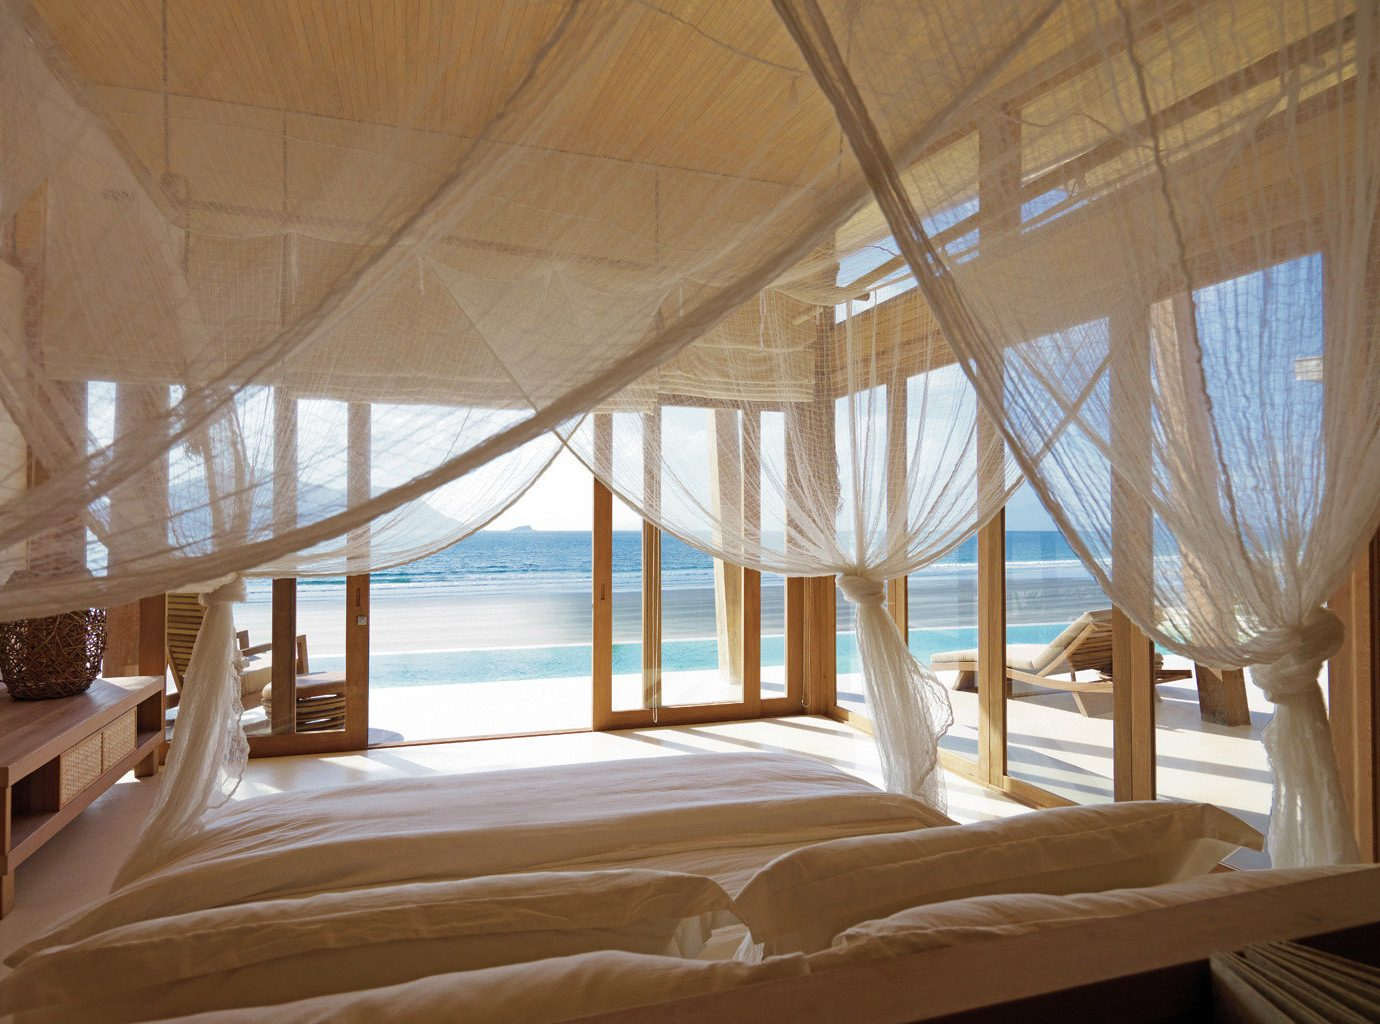 Beach Beachfront Bedroom Eco Elegant Forest Hotels Jungle Luxury Mountains Ocean Patio Scenic views Secret Getaways Trip Ideas Villa Waterfront indoor bed chair property room house Architecture estate wood interior design home daylighting ceiling Design Resort